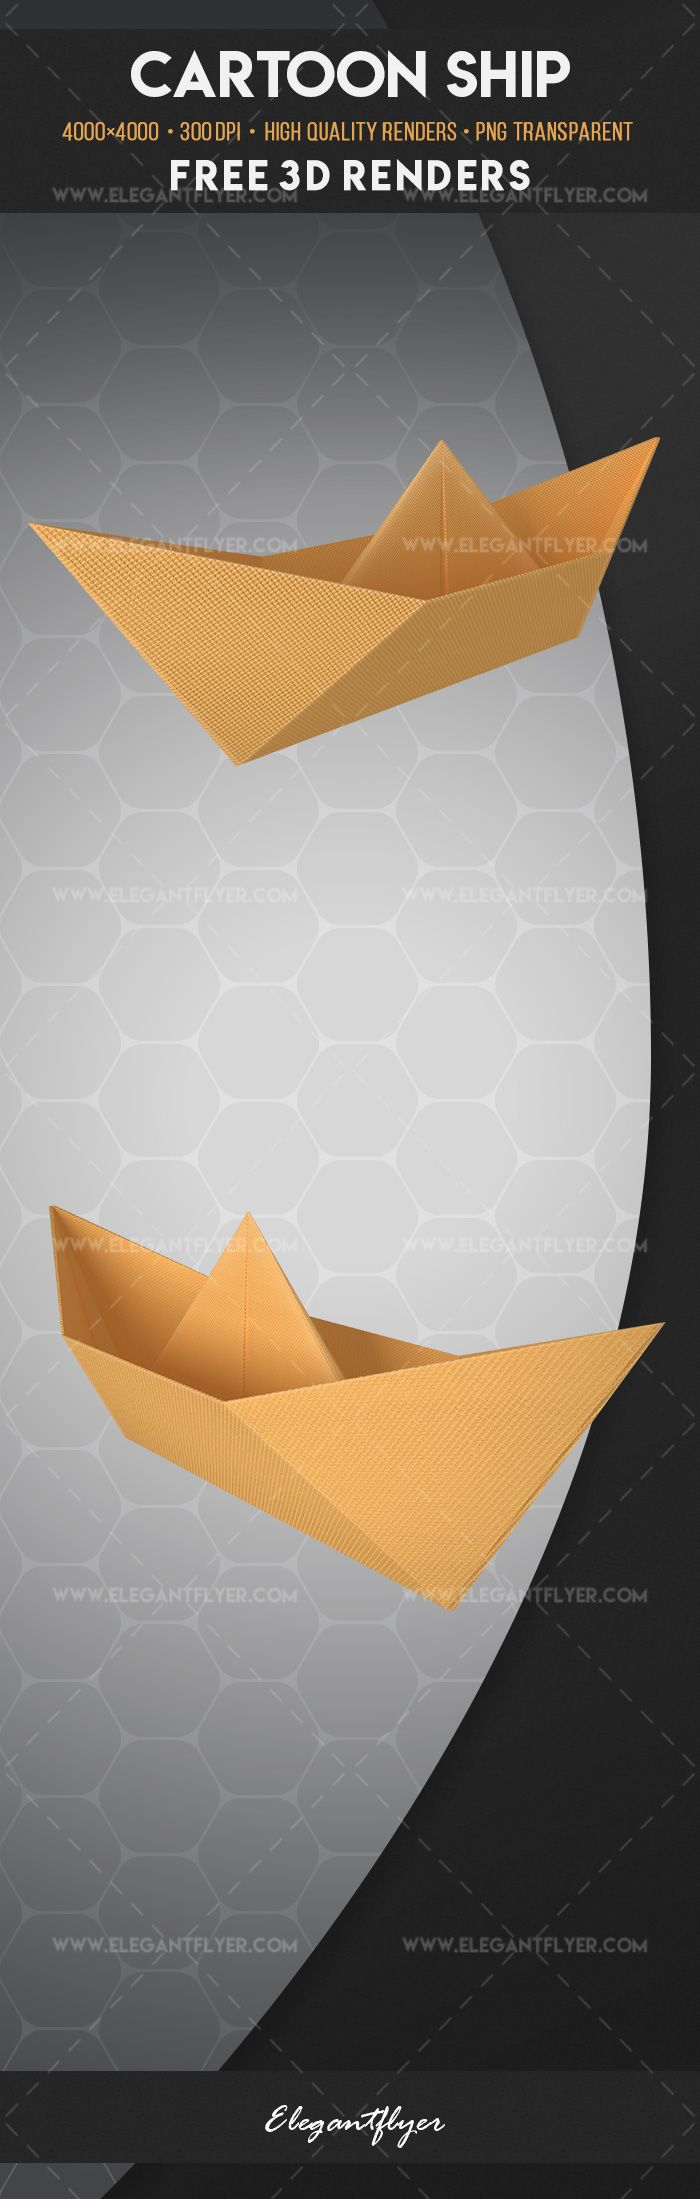 Cartoon Ship – Free 3d Render Templates